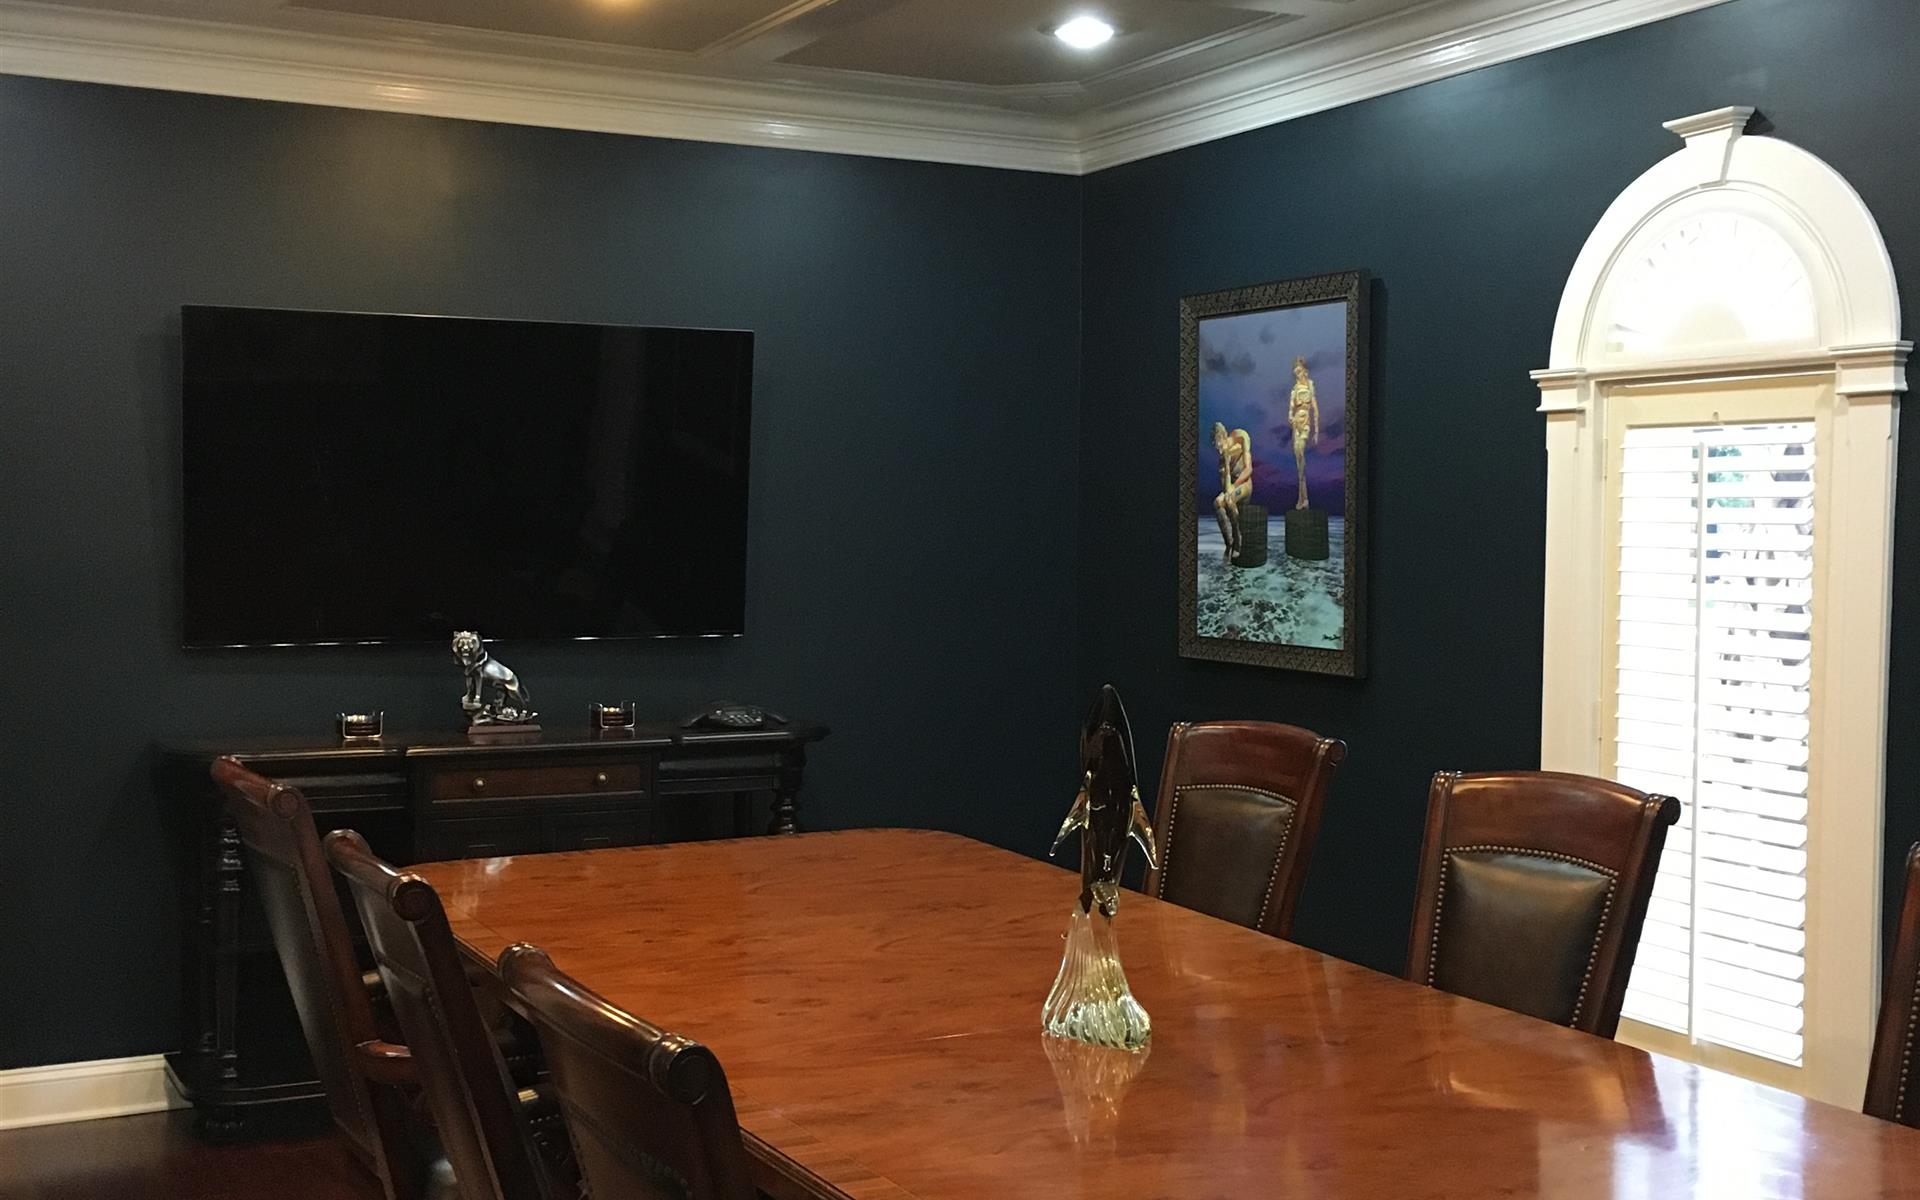 Axelrod & Associates, P.A. - Comfort, Convenience, and Elegance